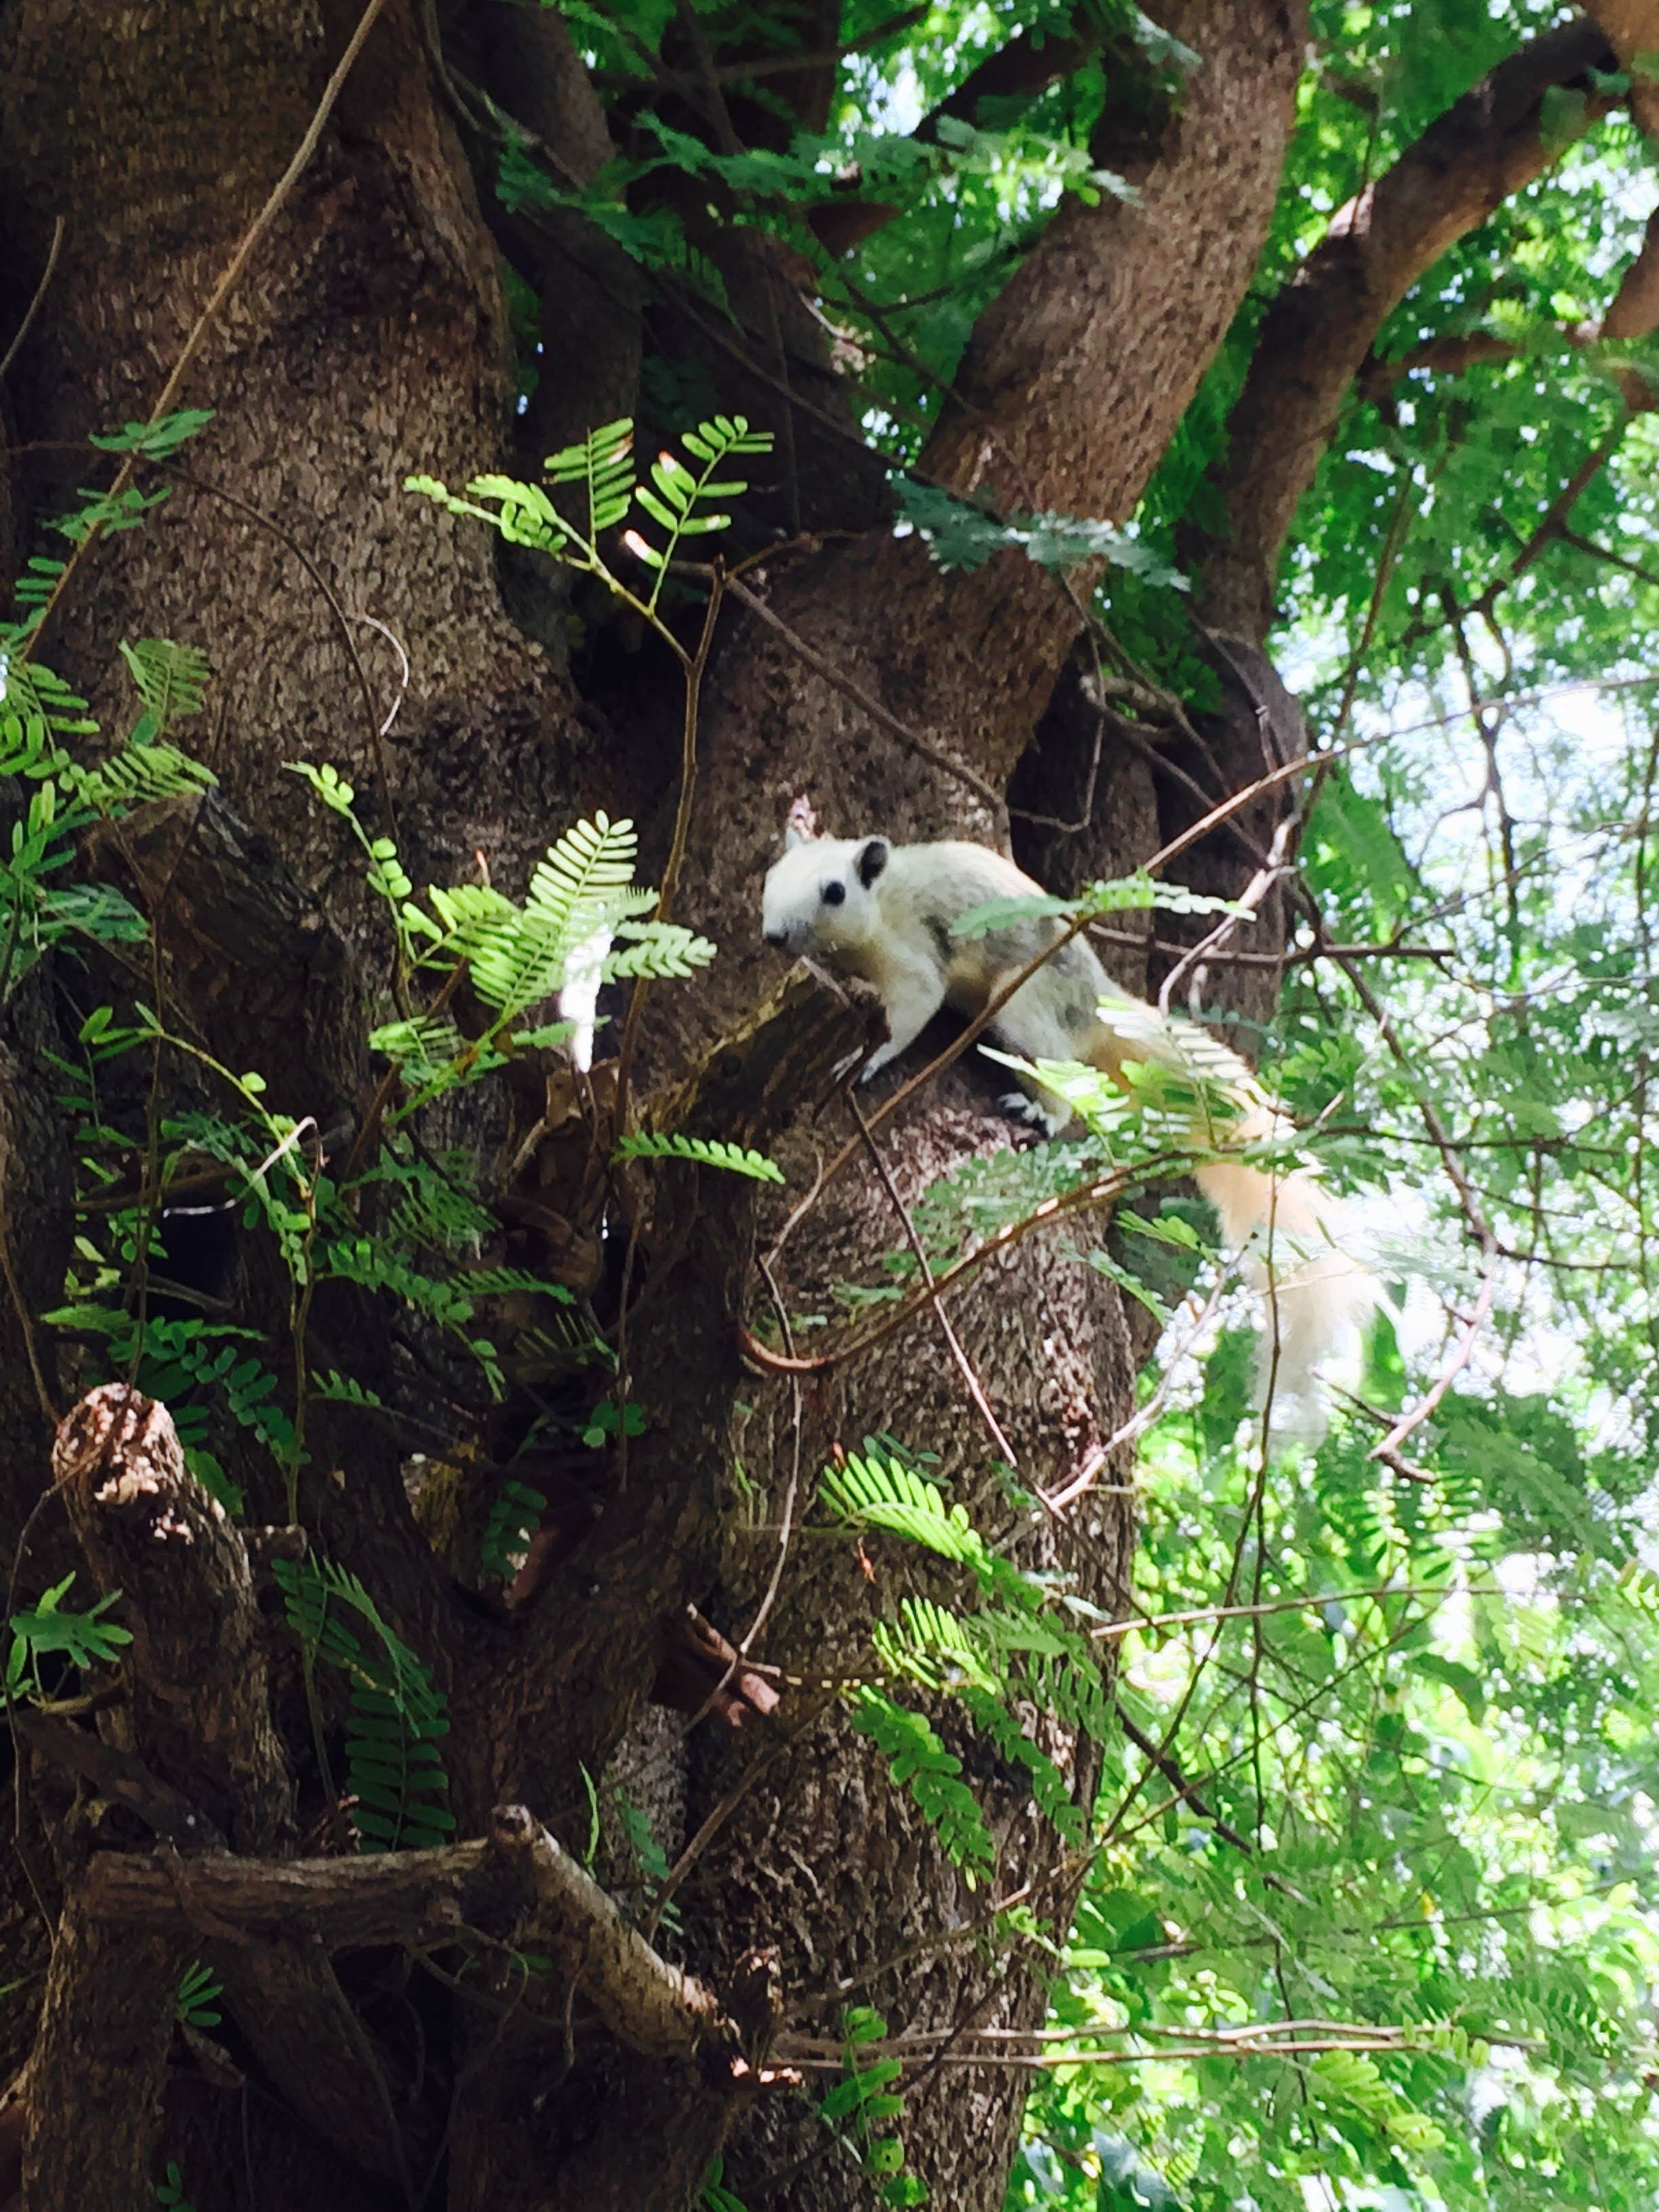 Another sunny day in Pattaya and we\'ve got a visitor in our garden ...